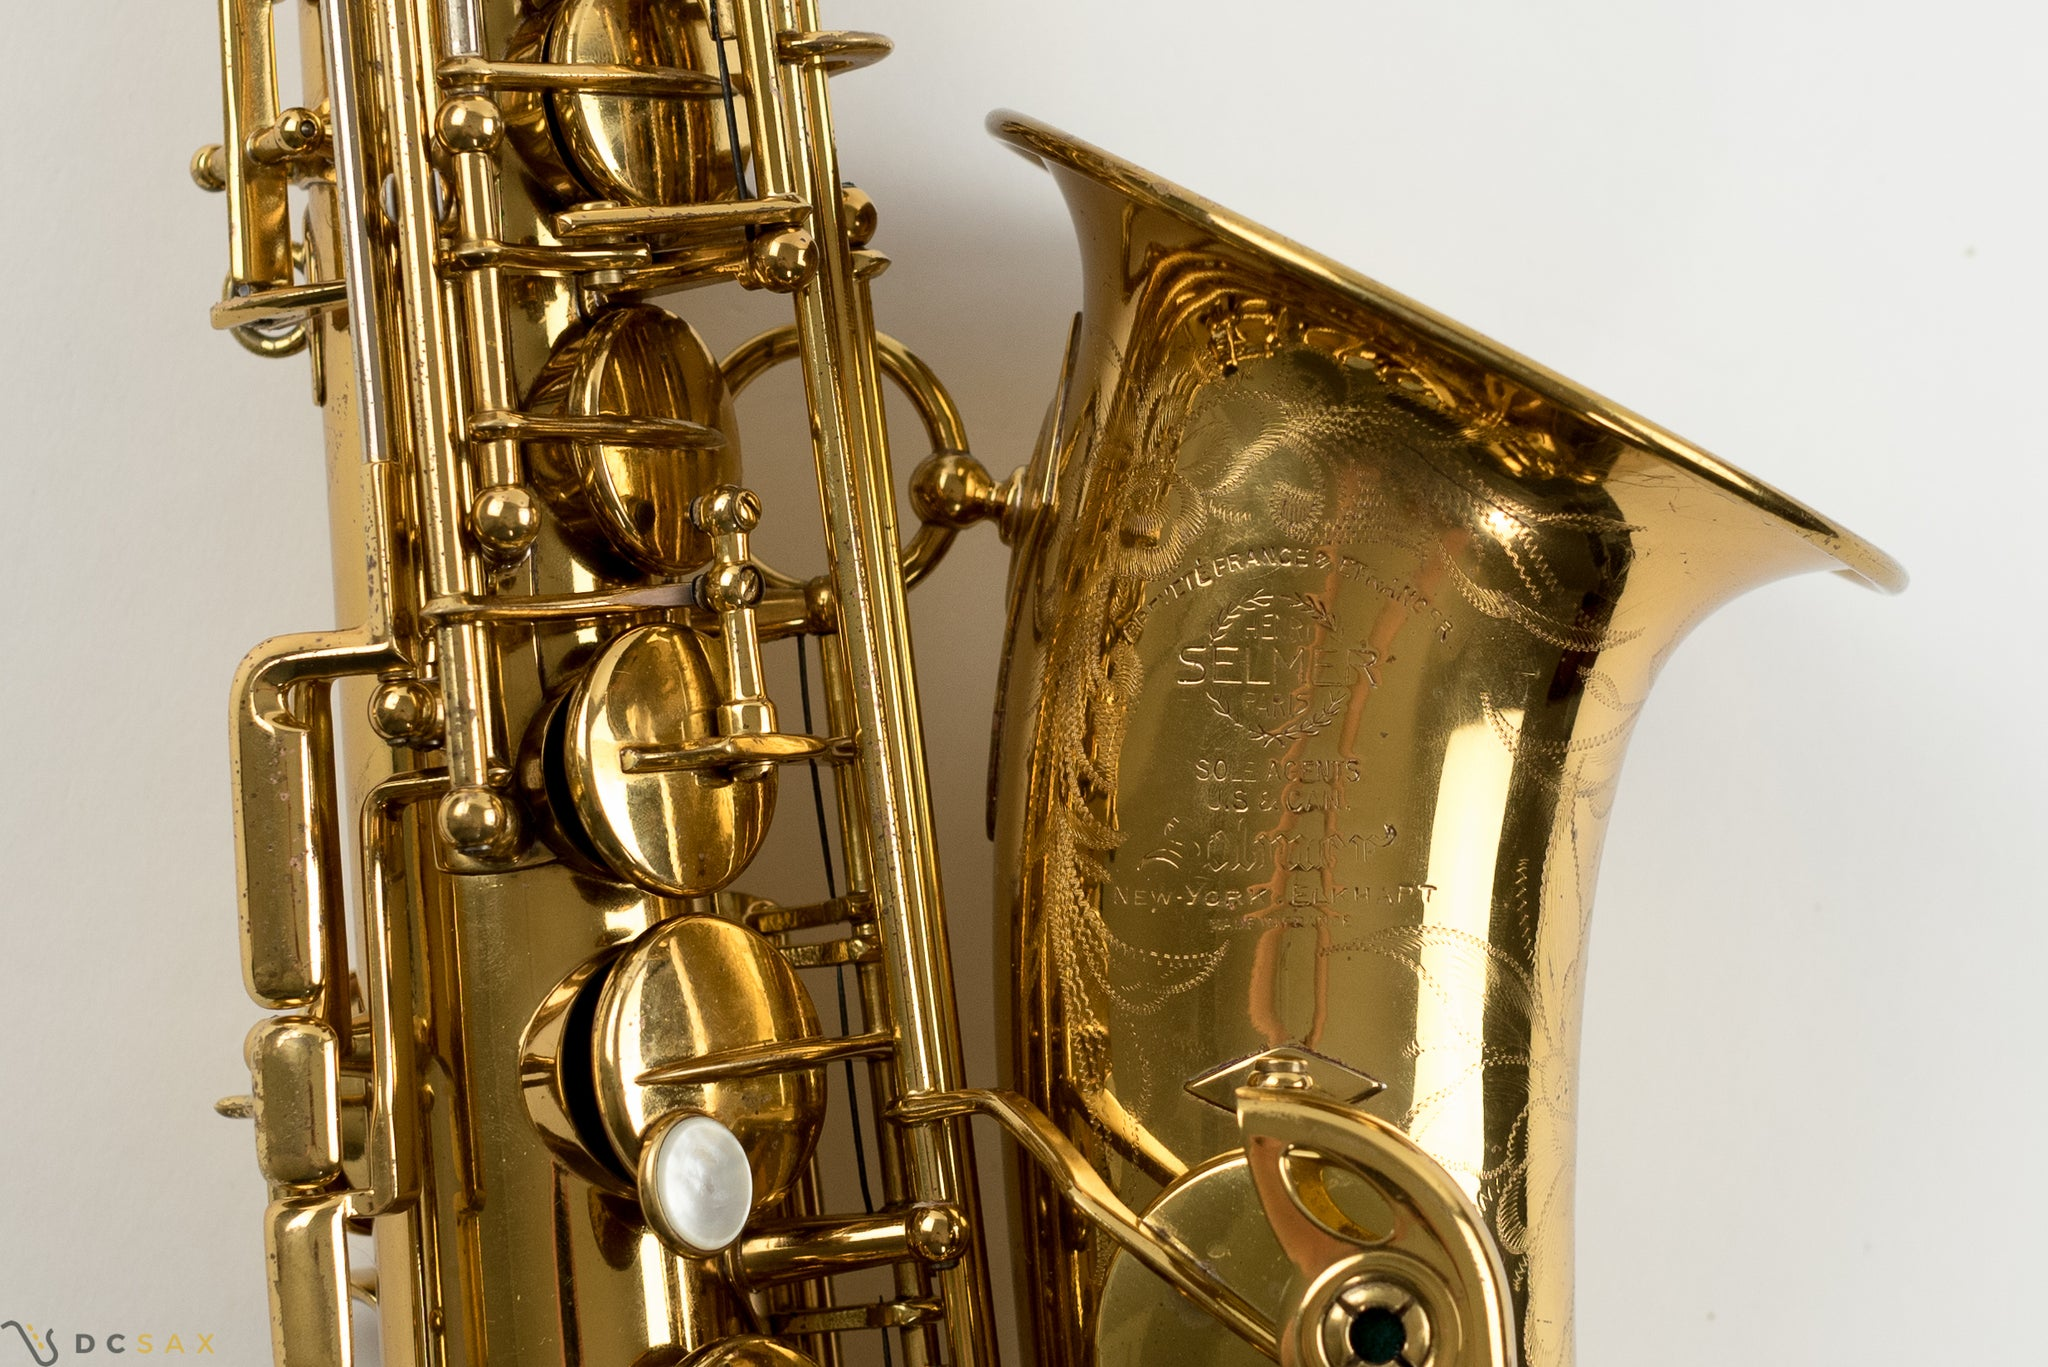 43,xxx Selmer Super Balanced Action Alto Saxophone